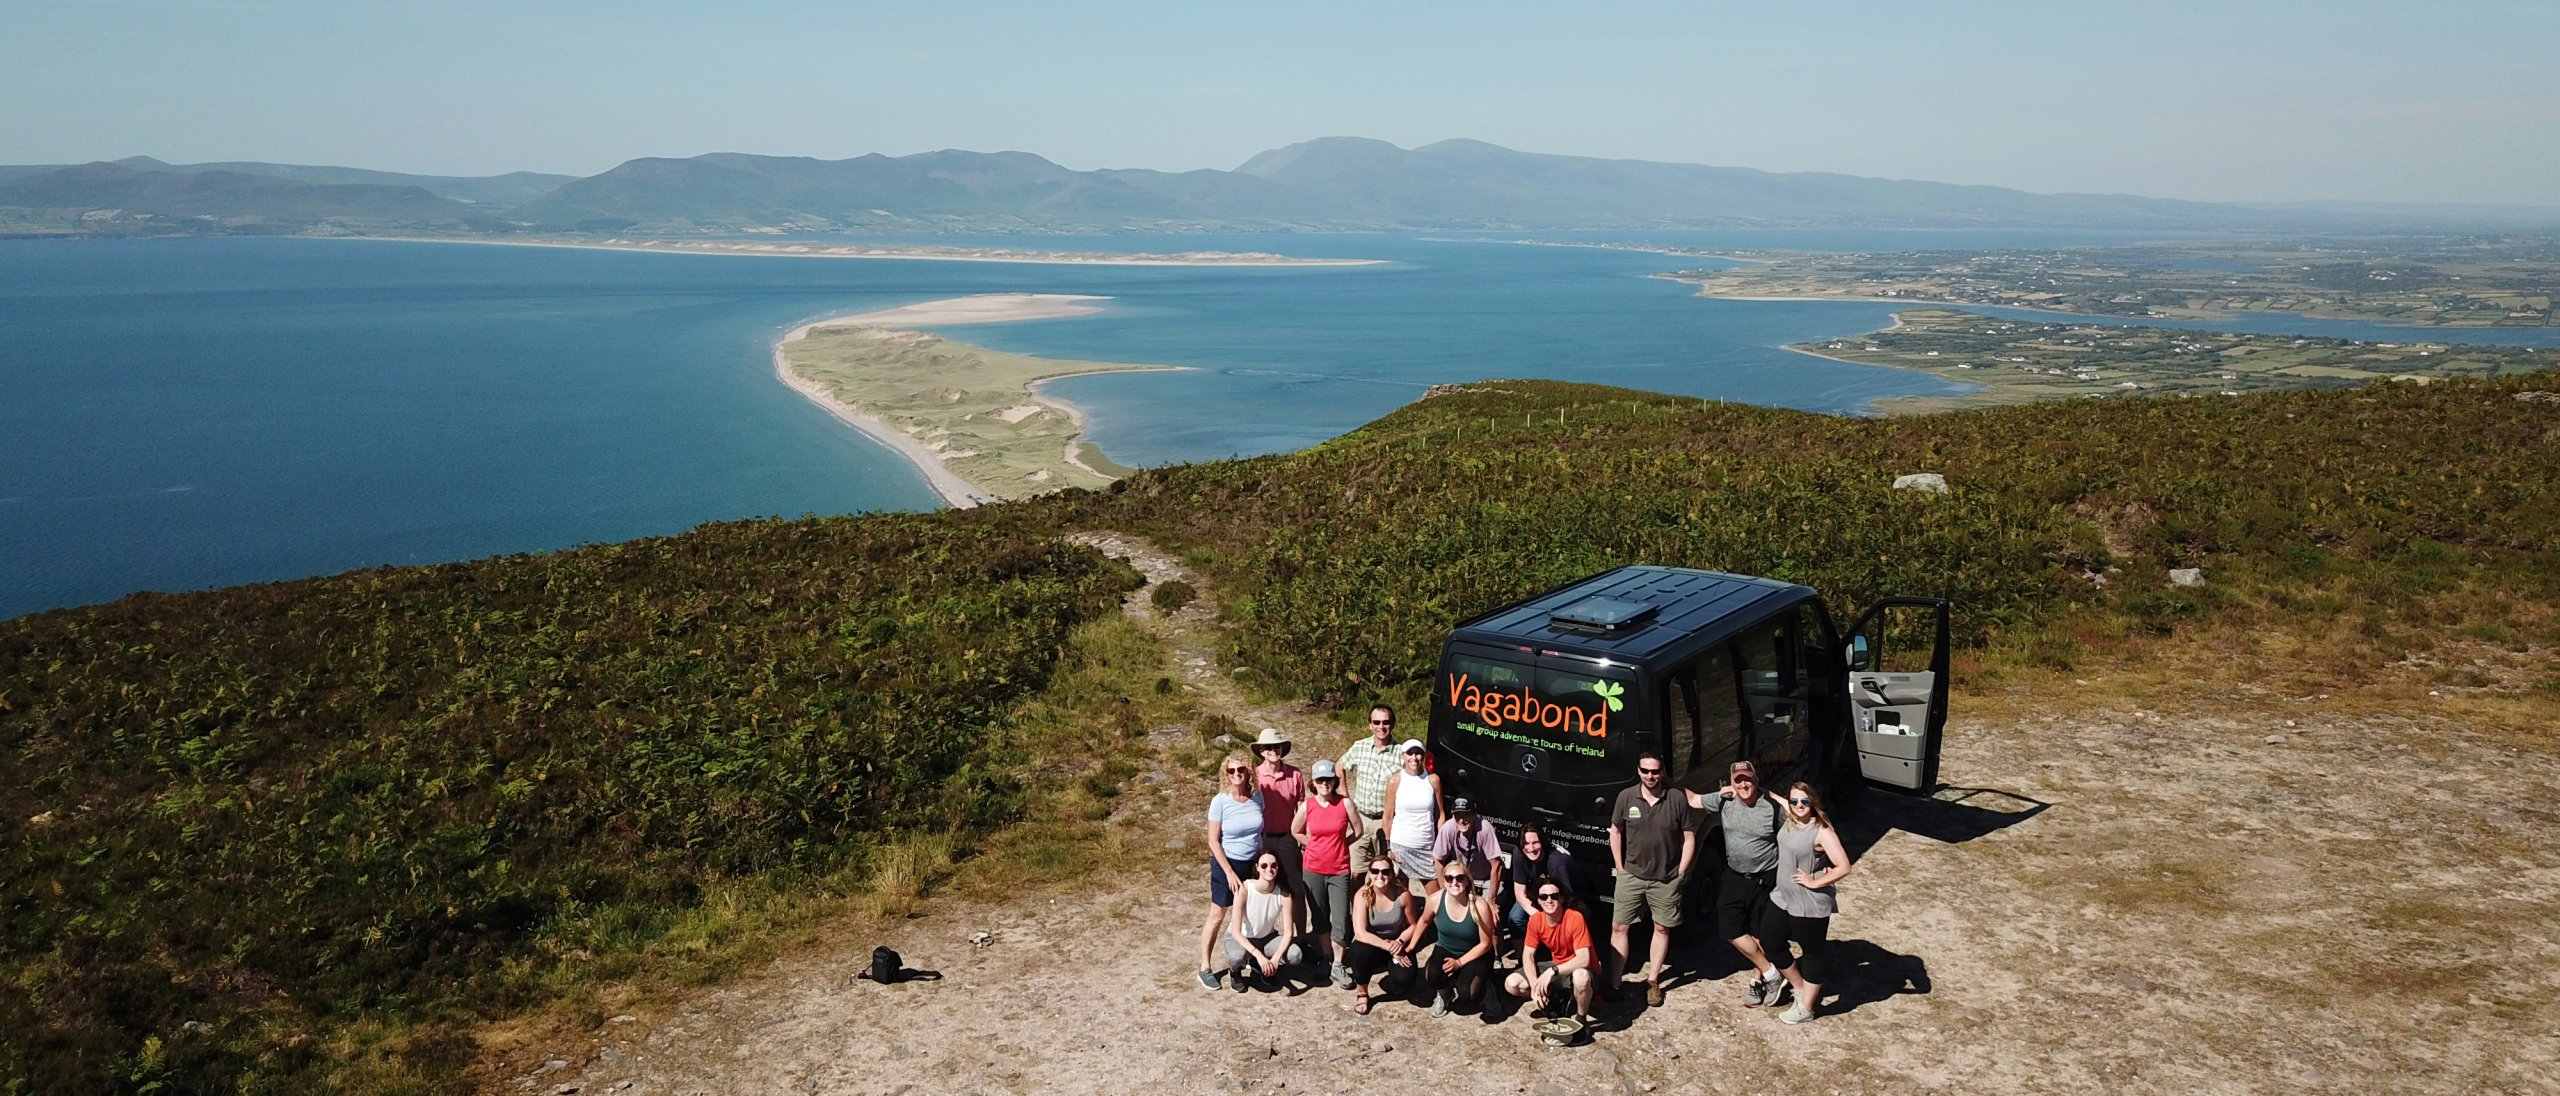 Vagabond VagaTron Tour Vehicle and group posing at Rossbeigh in Kerry